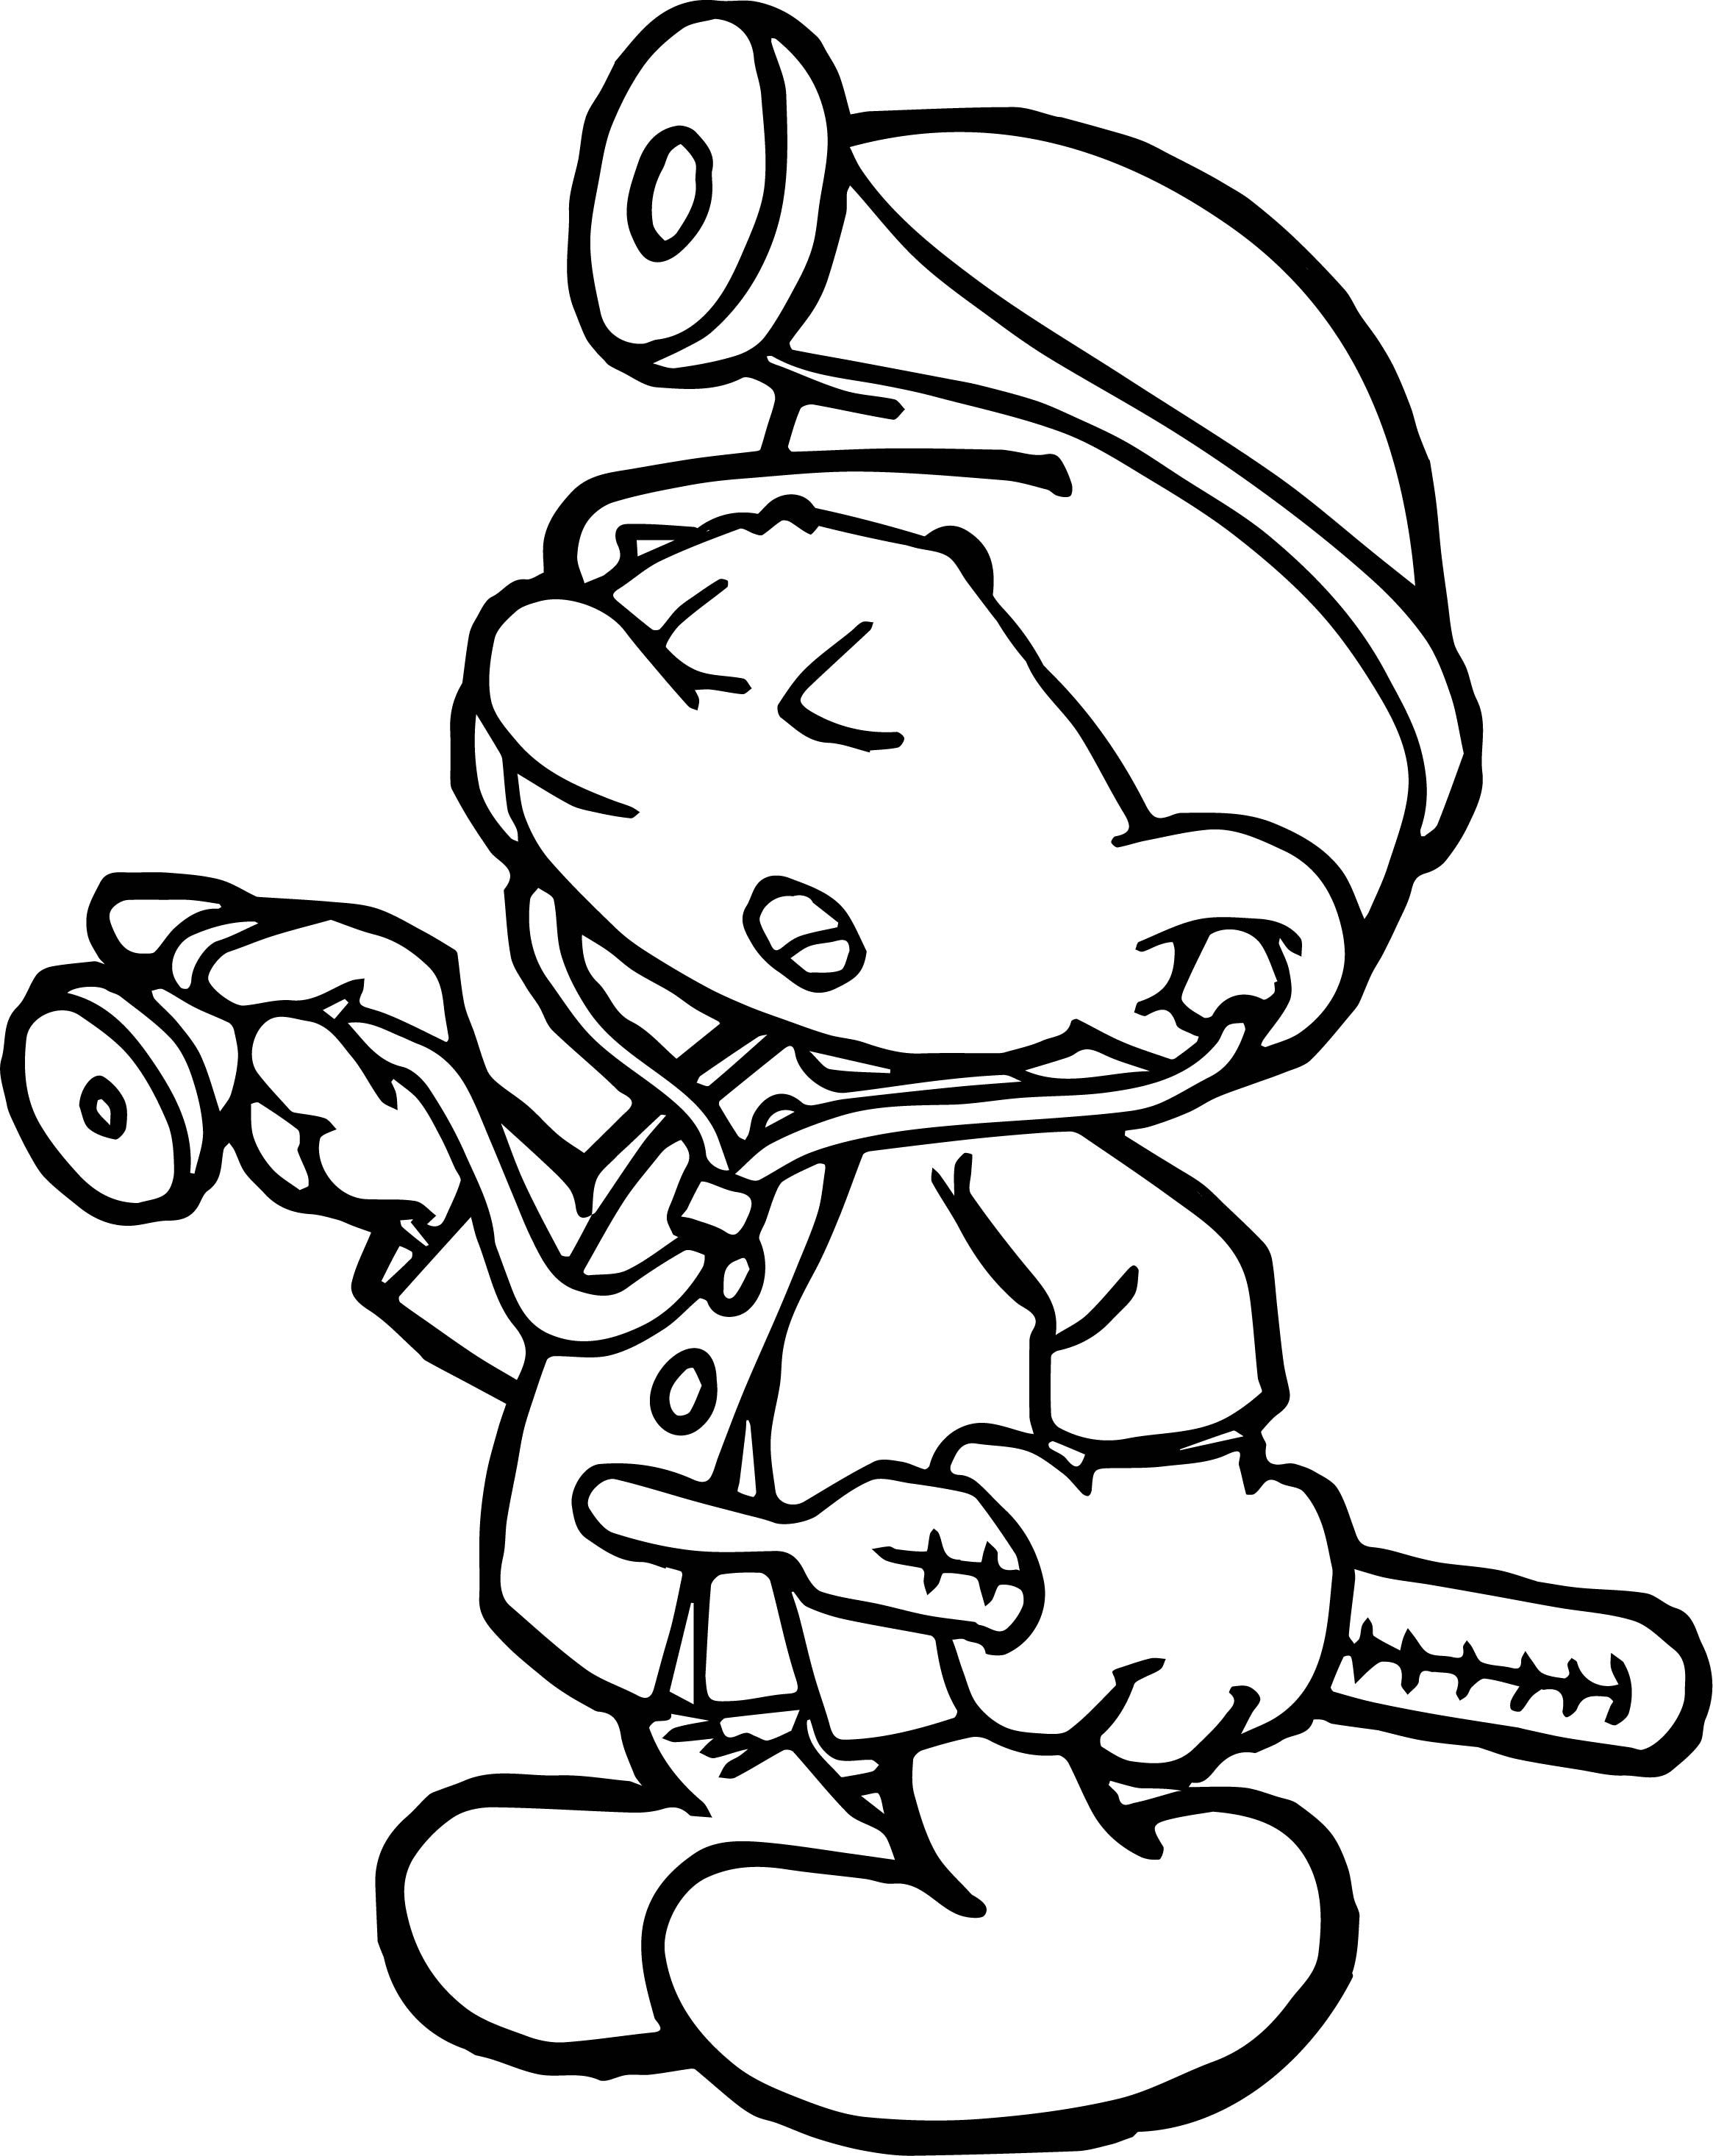 Cool Doctor Smurf Coloring Page Coloring Pages Coloring Pages